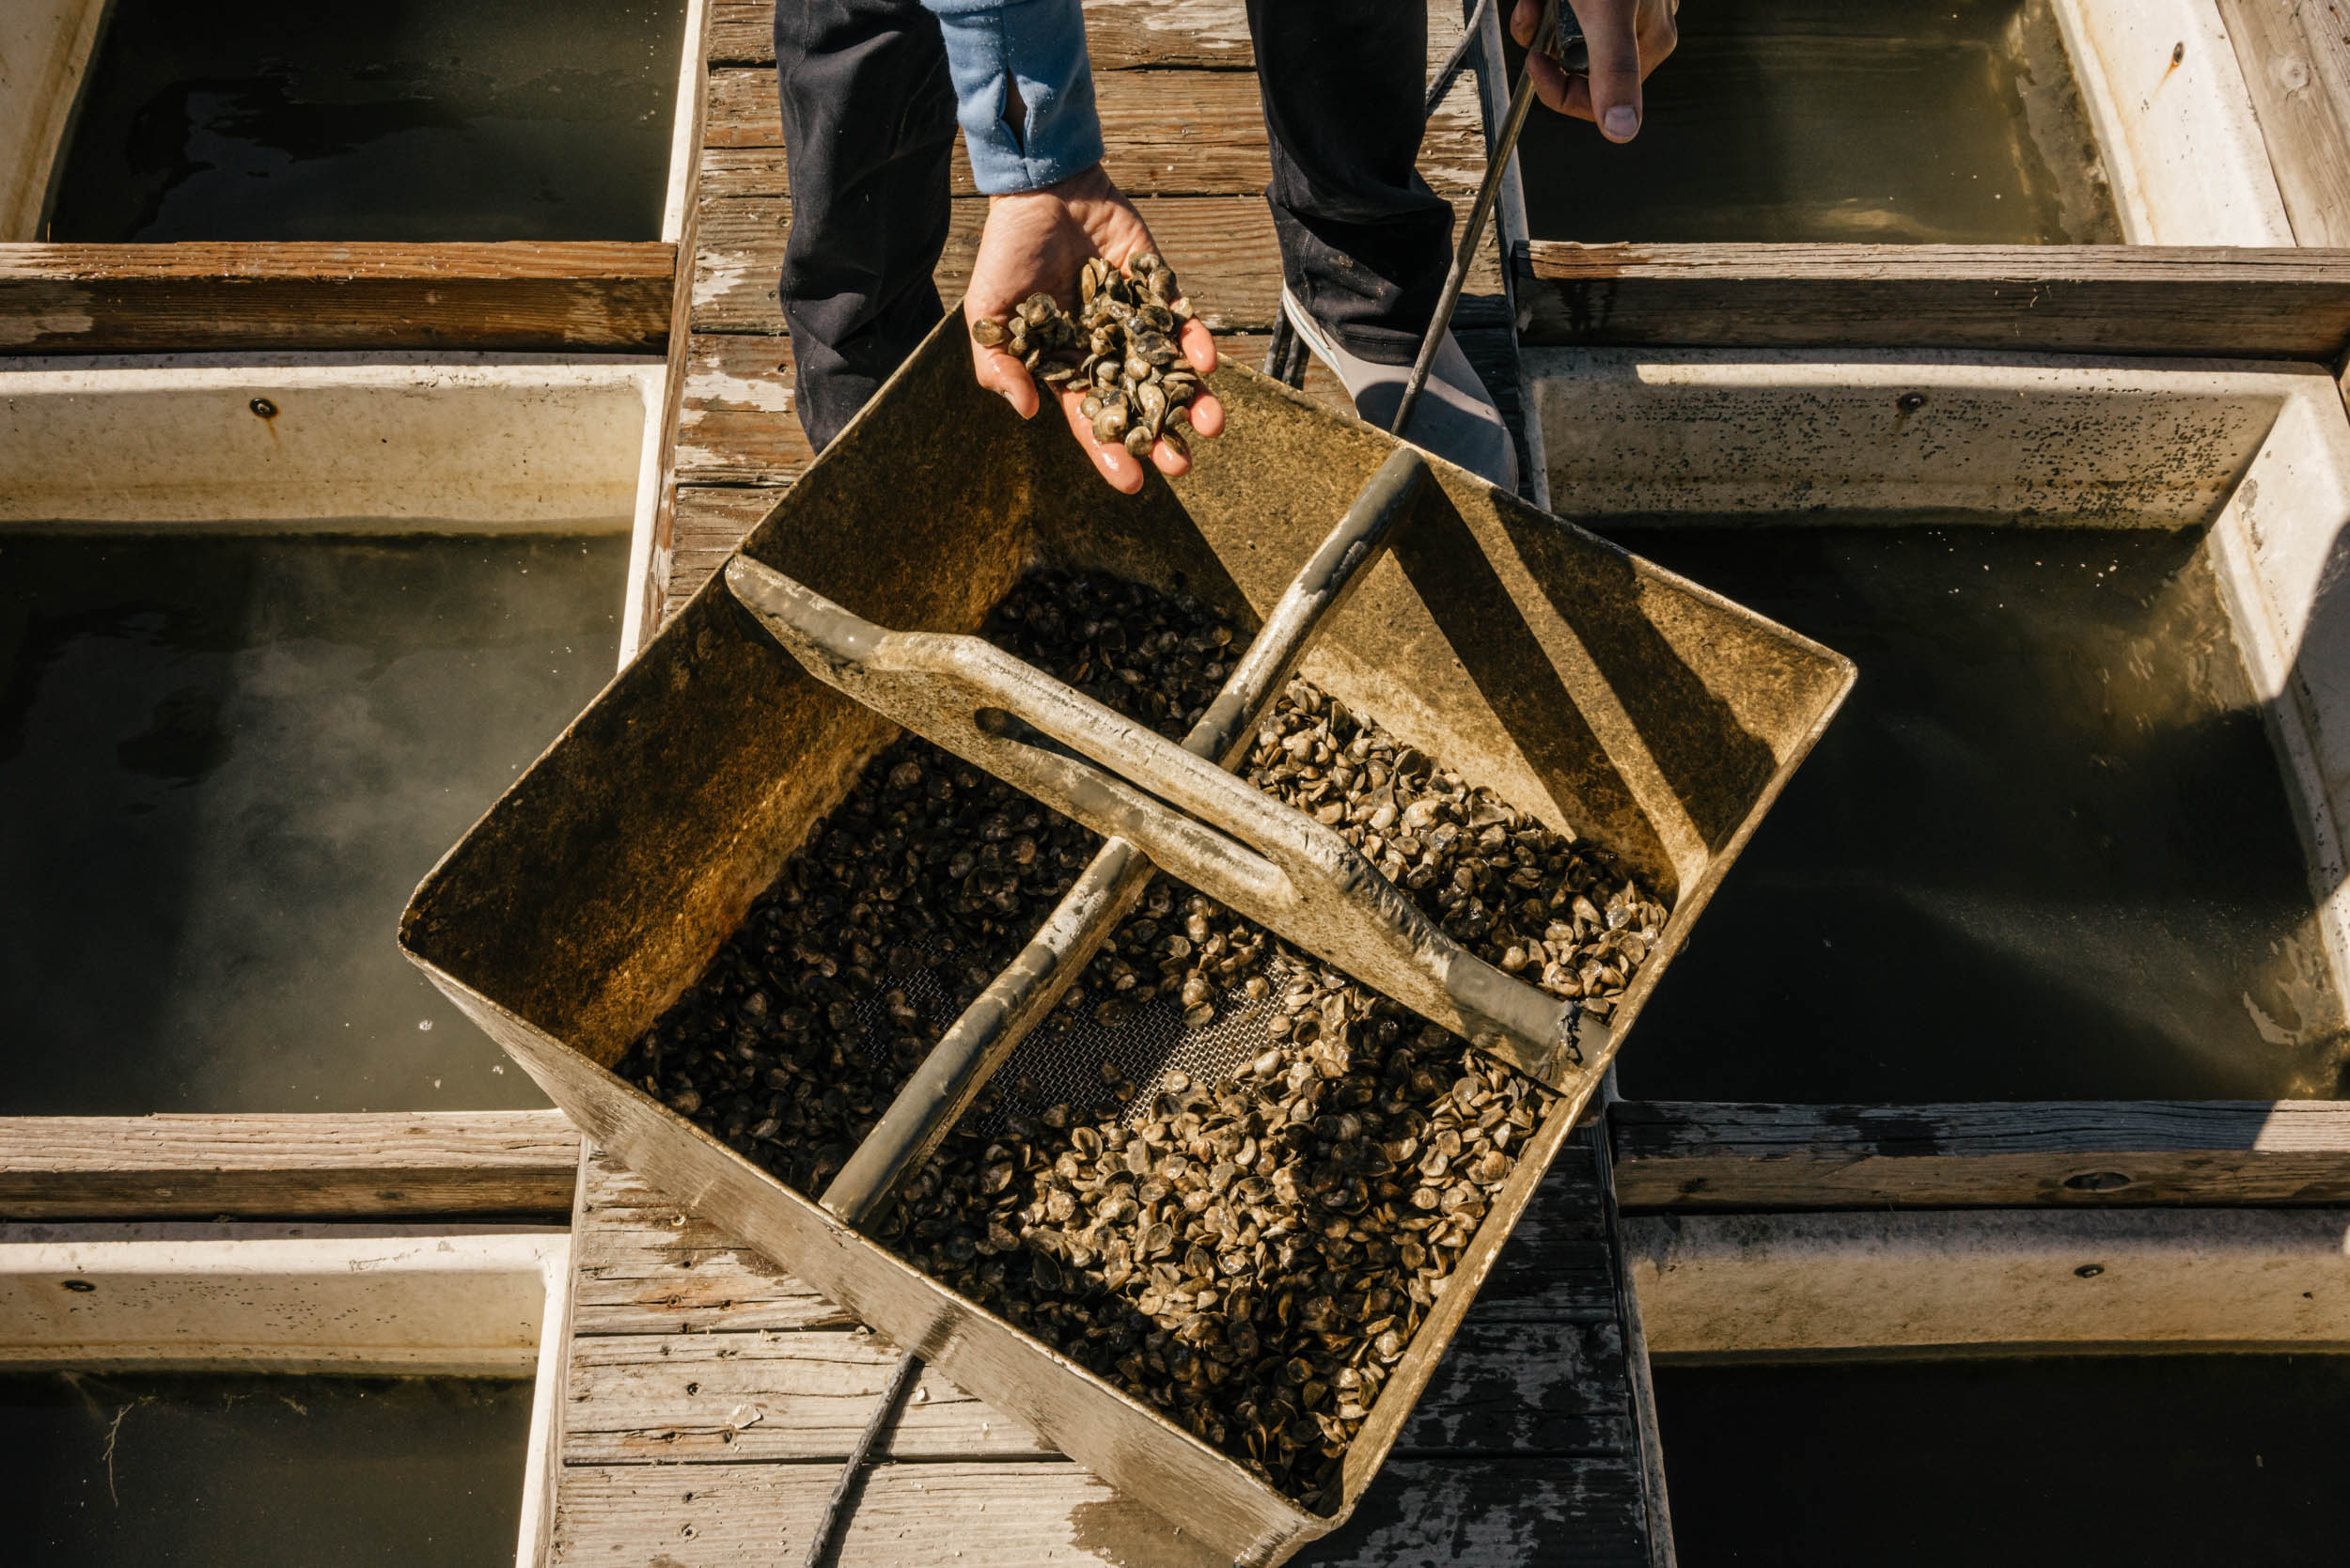 oyster seedlings on dock in hand of oyster farmer